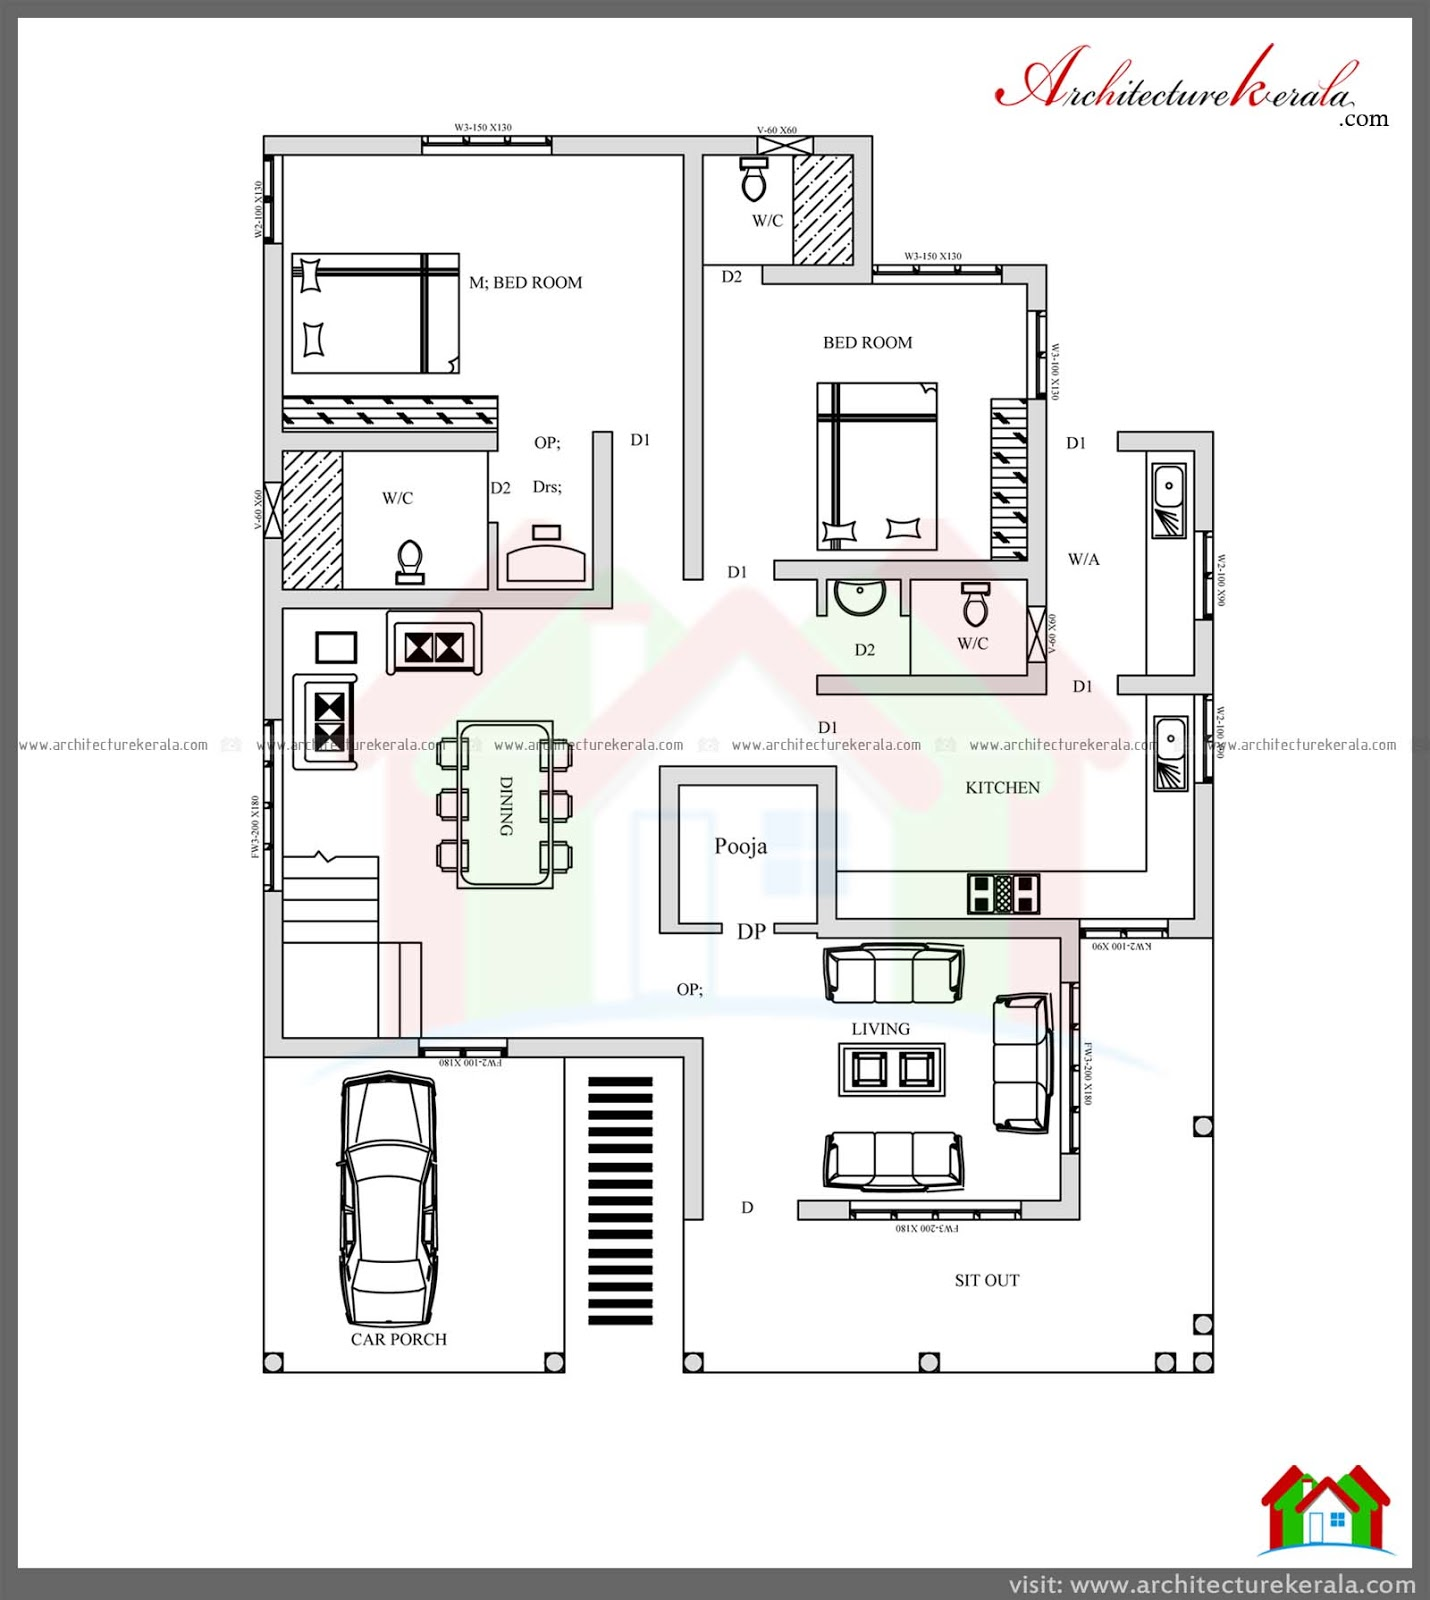 Kerala Model Home Plans: 4 BED HOUSE PLAN WITH POOJA ROOM